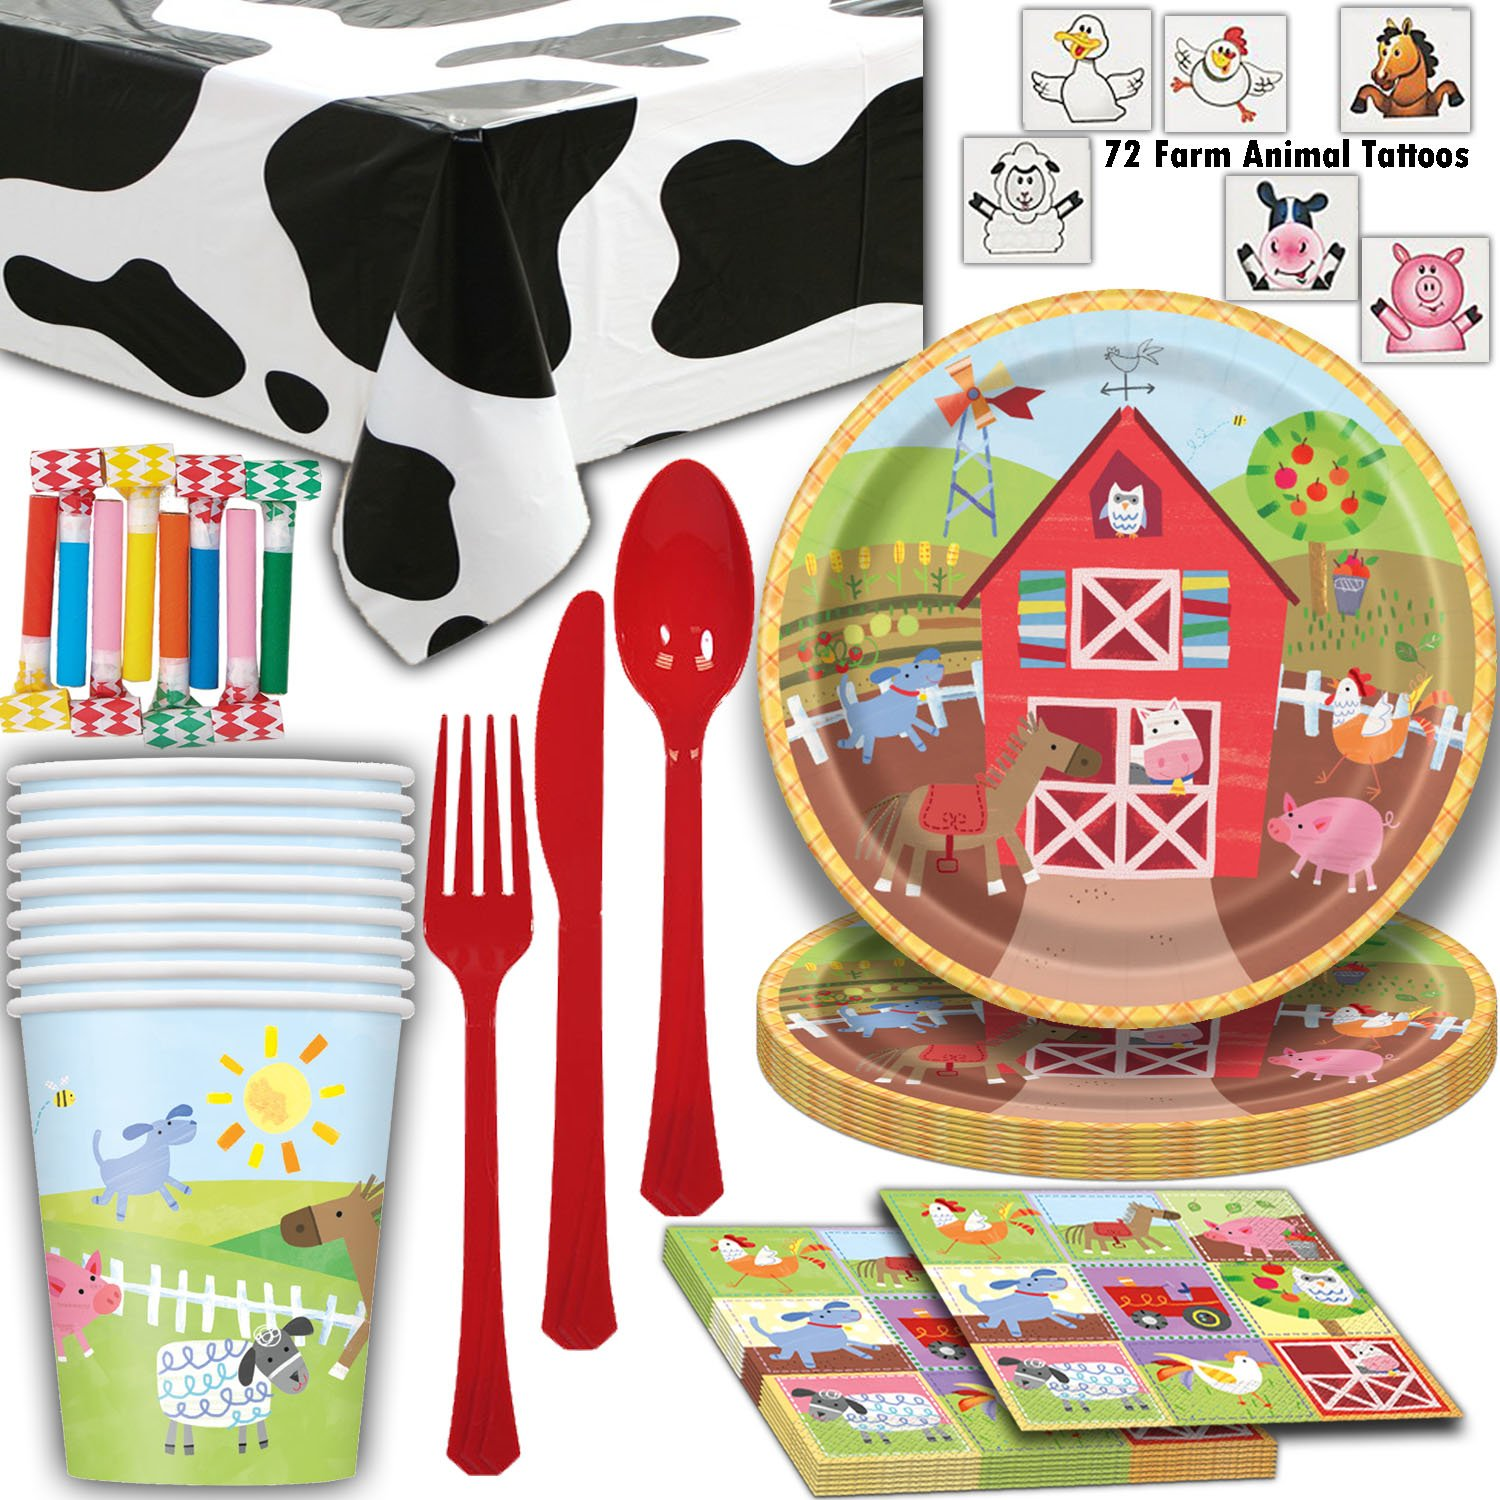 HeroFiber Farm House Animal Party Supplies - 8 Guest - Plates, Cups, Napkins, Cow Tablecloth, Cutlery, Farm Animal Tattoos, Blowouts - Perfect for a Farmer or Petting Zoo Theme Birthday Party